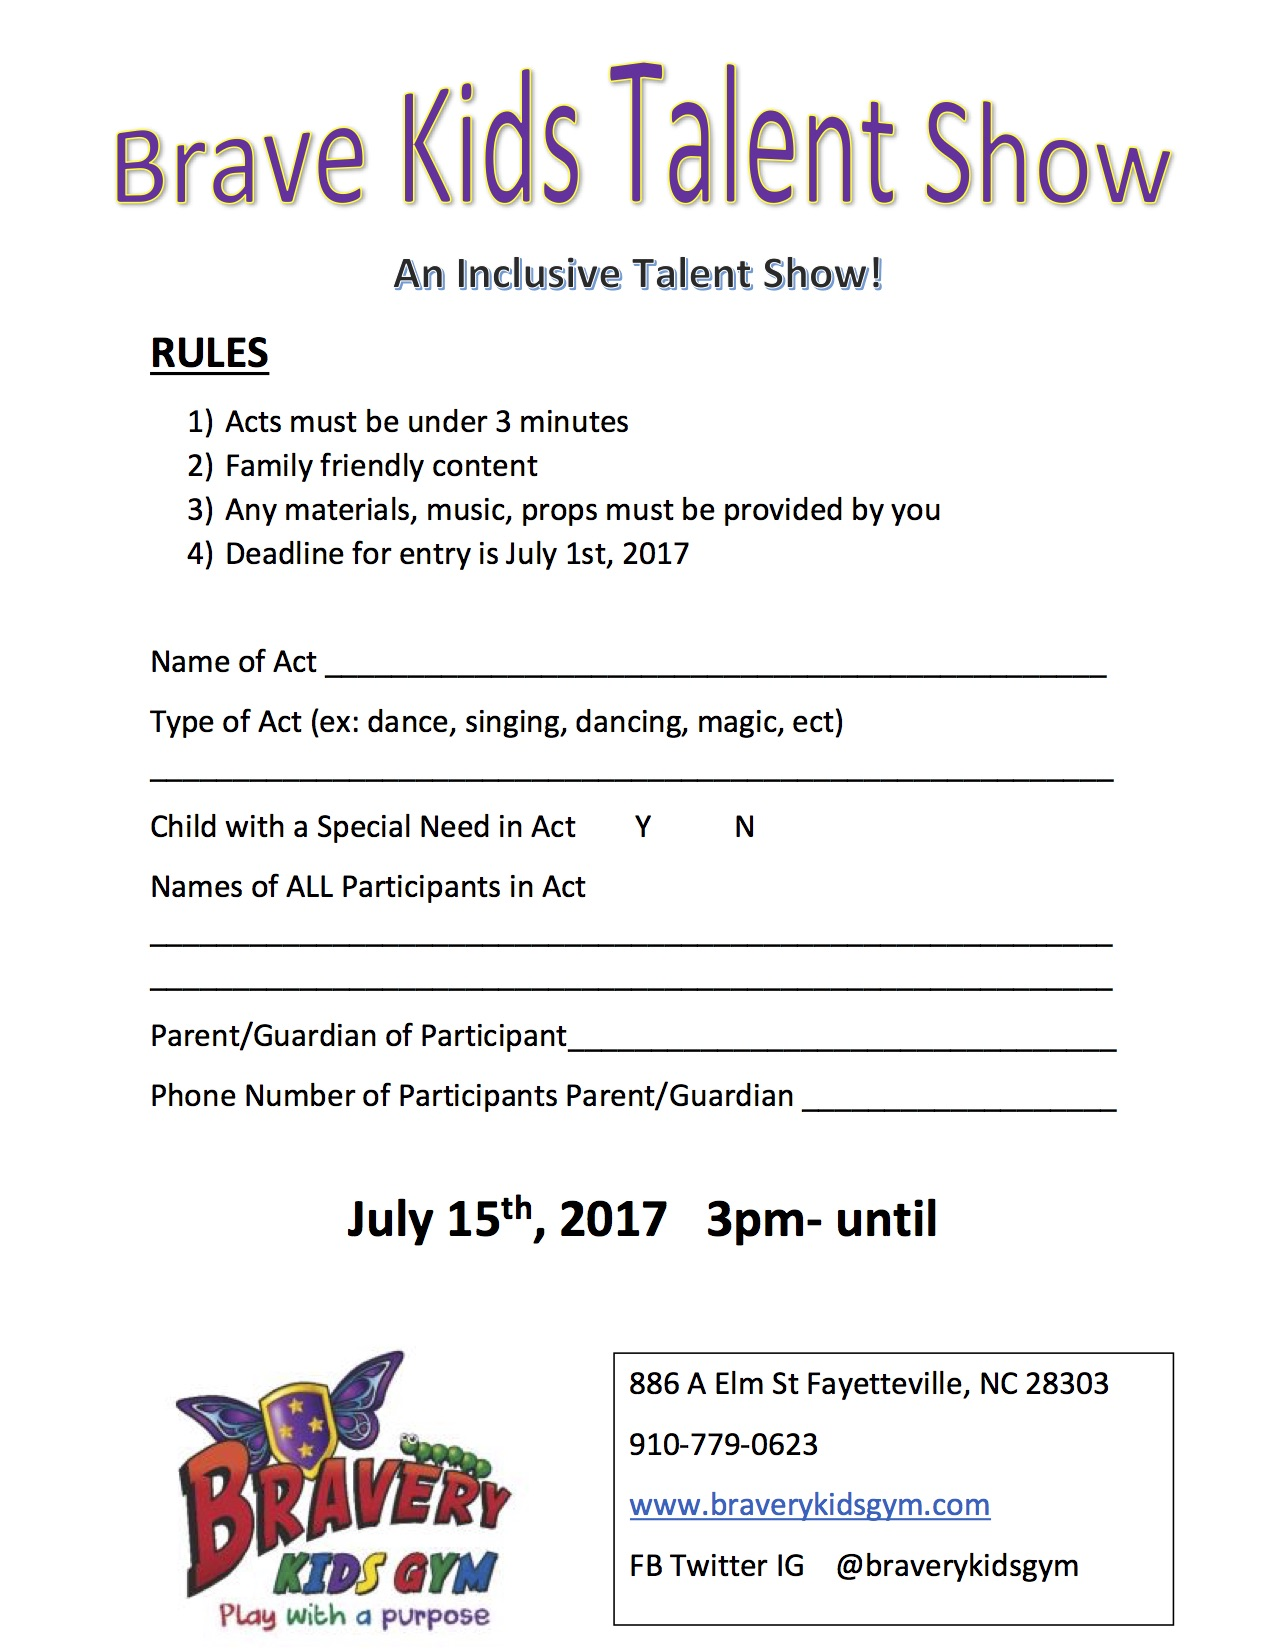 Talent Show Entry Form